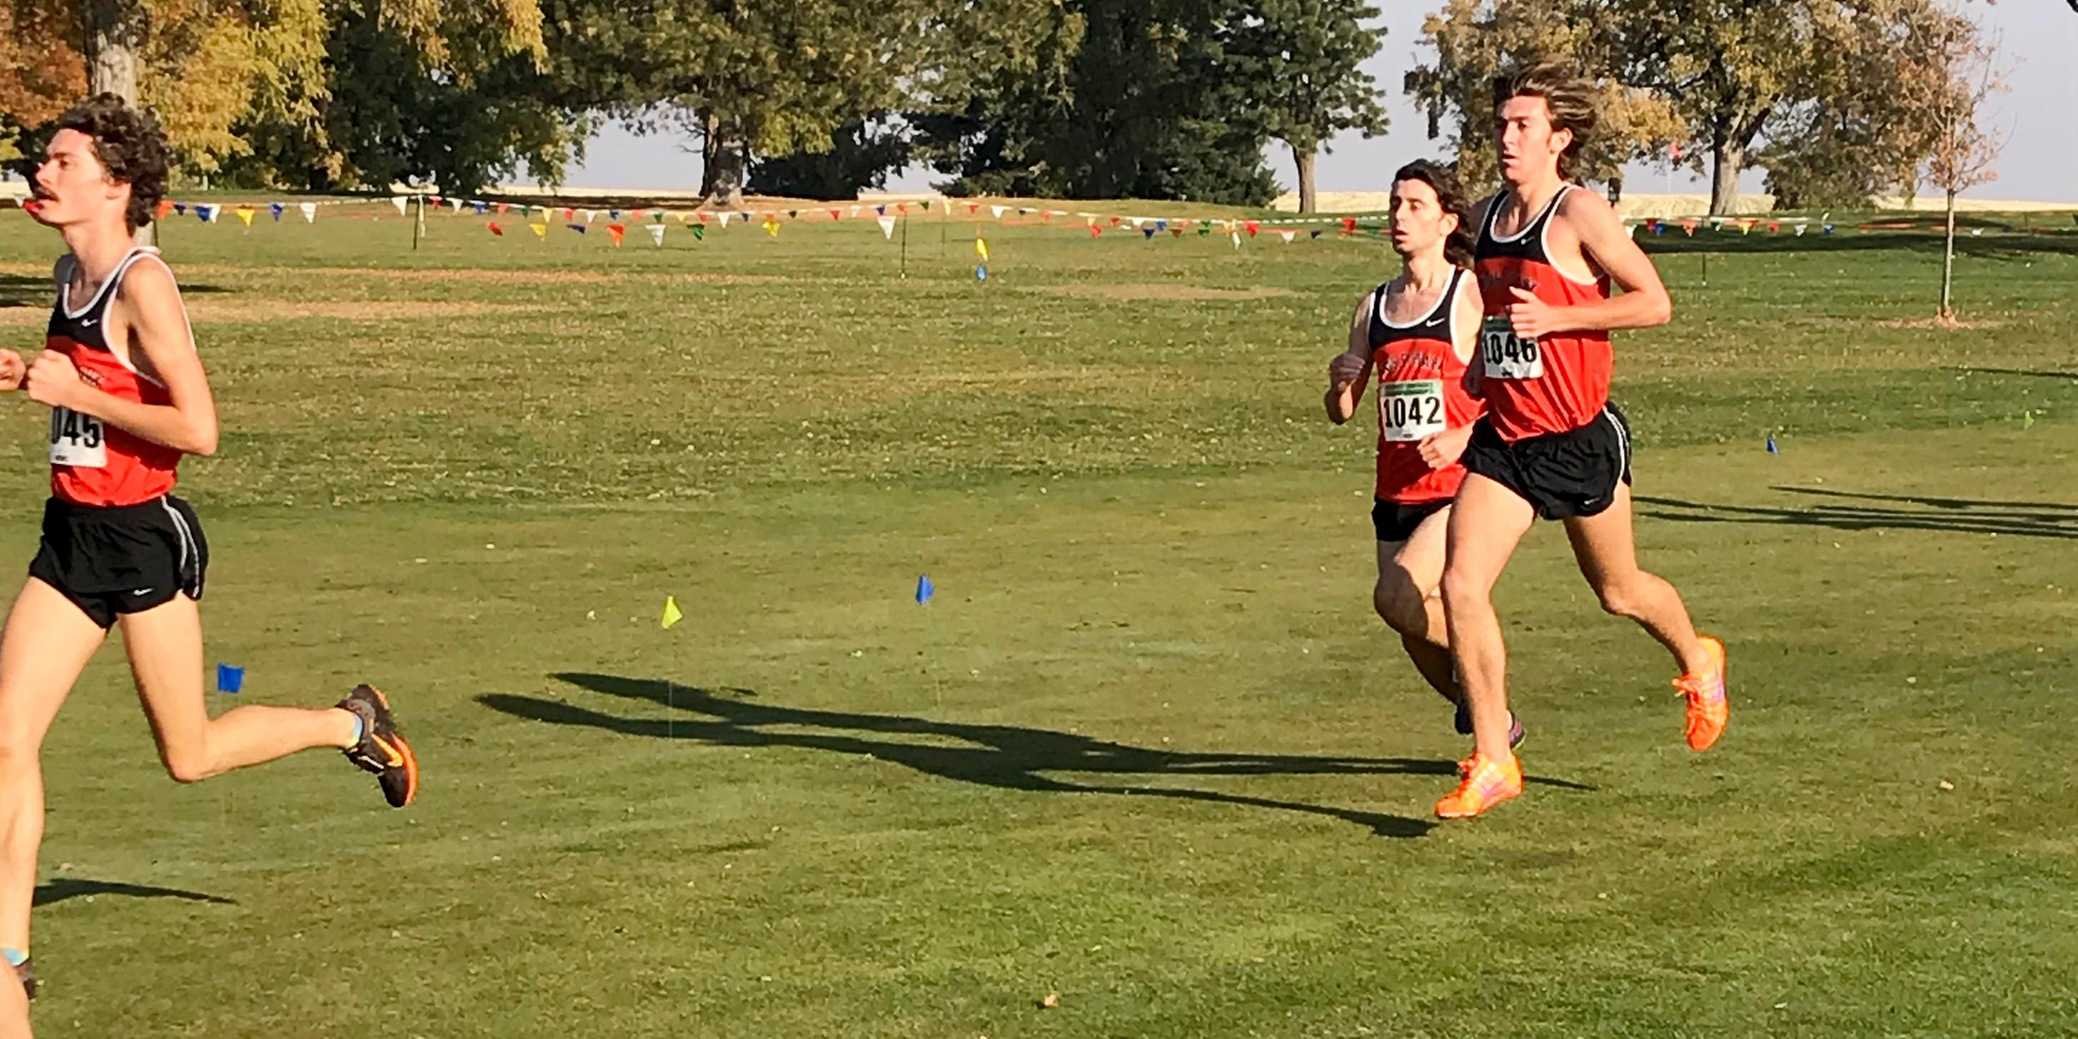 Men's third place highest since 2012, women seventh at NWC Championships